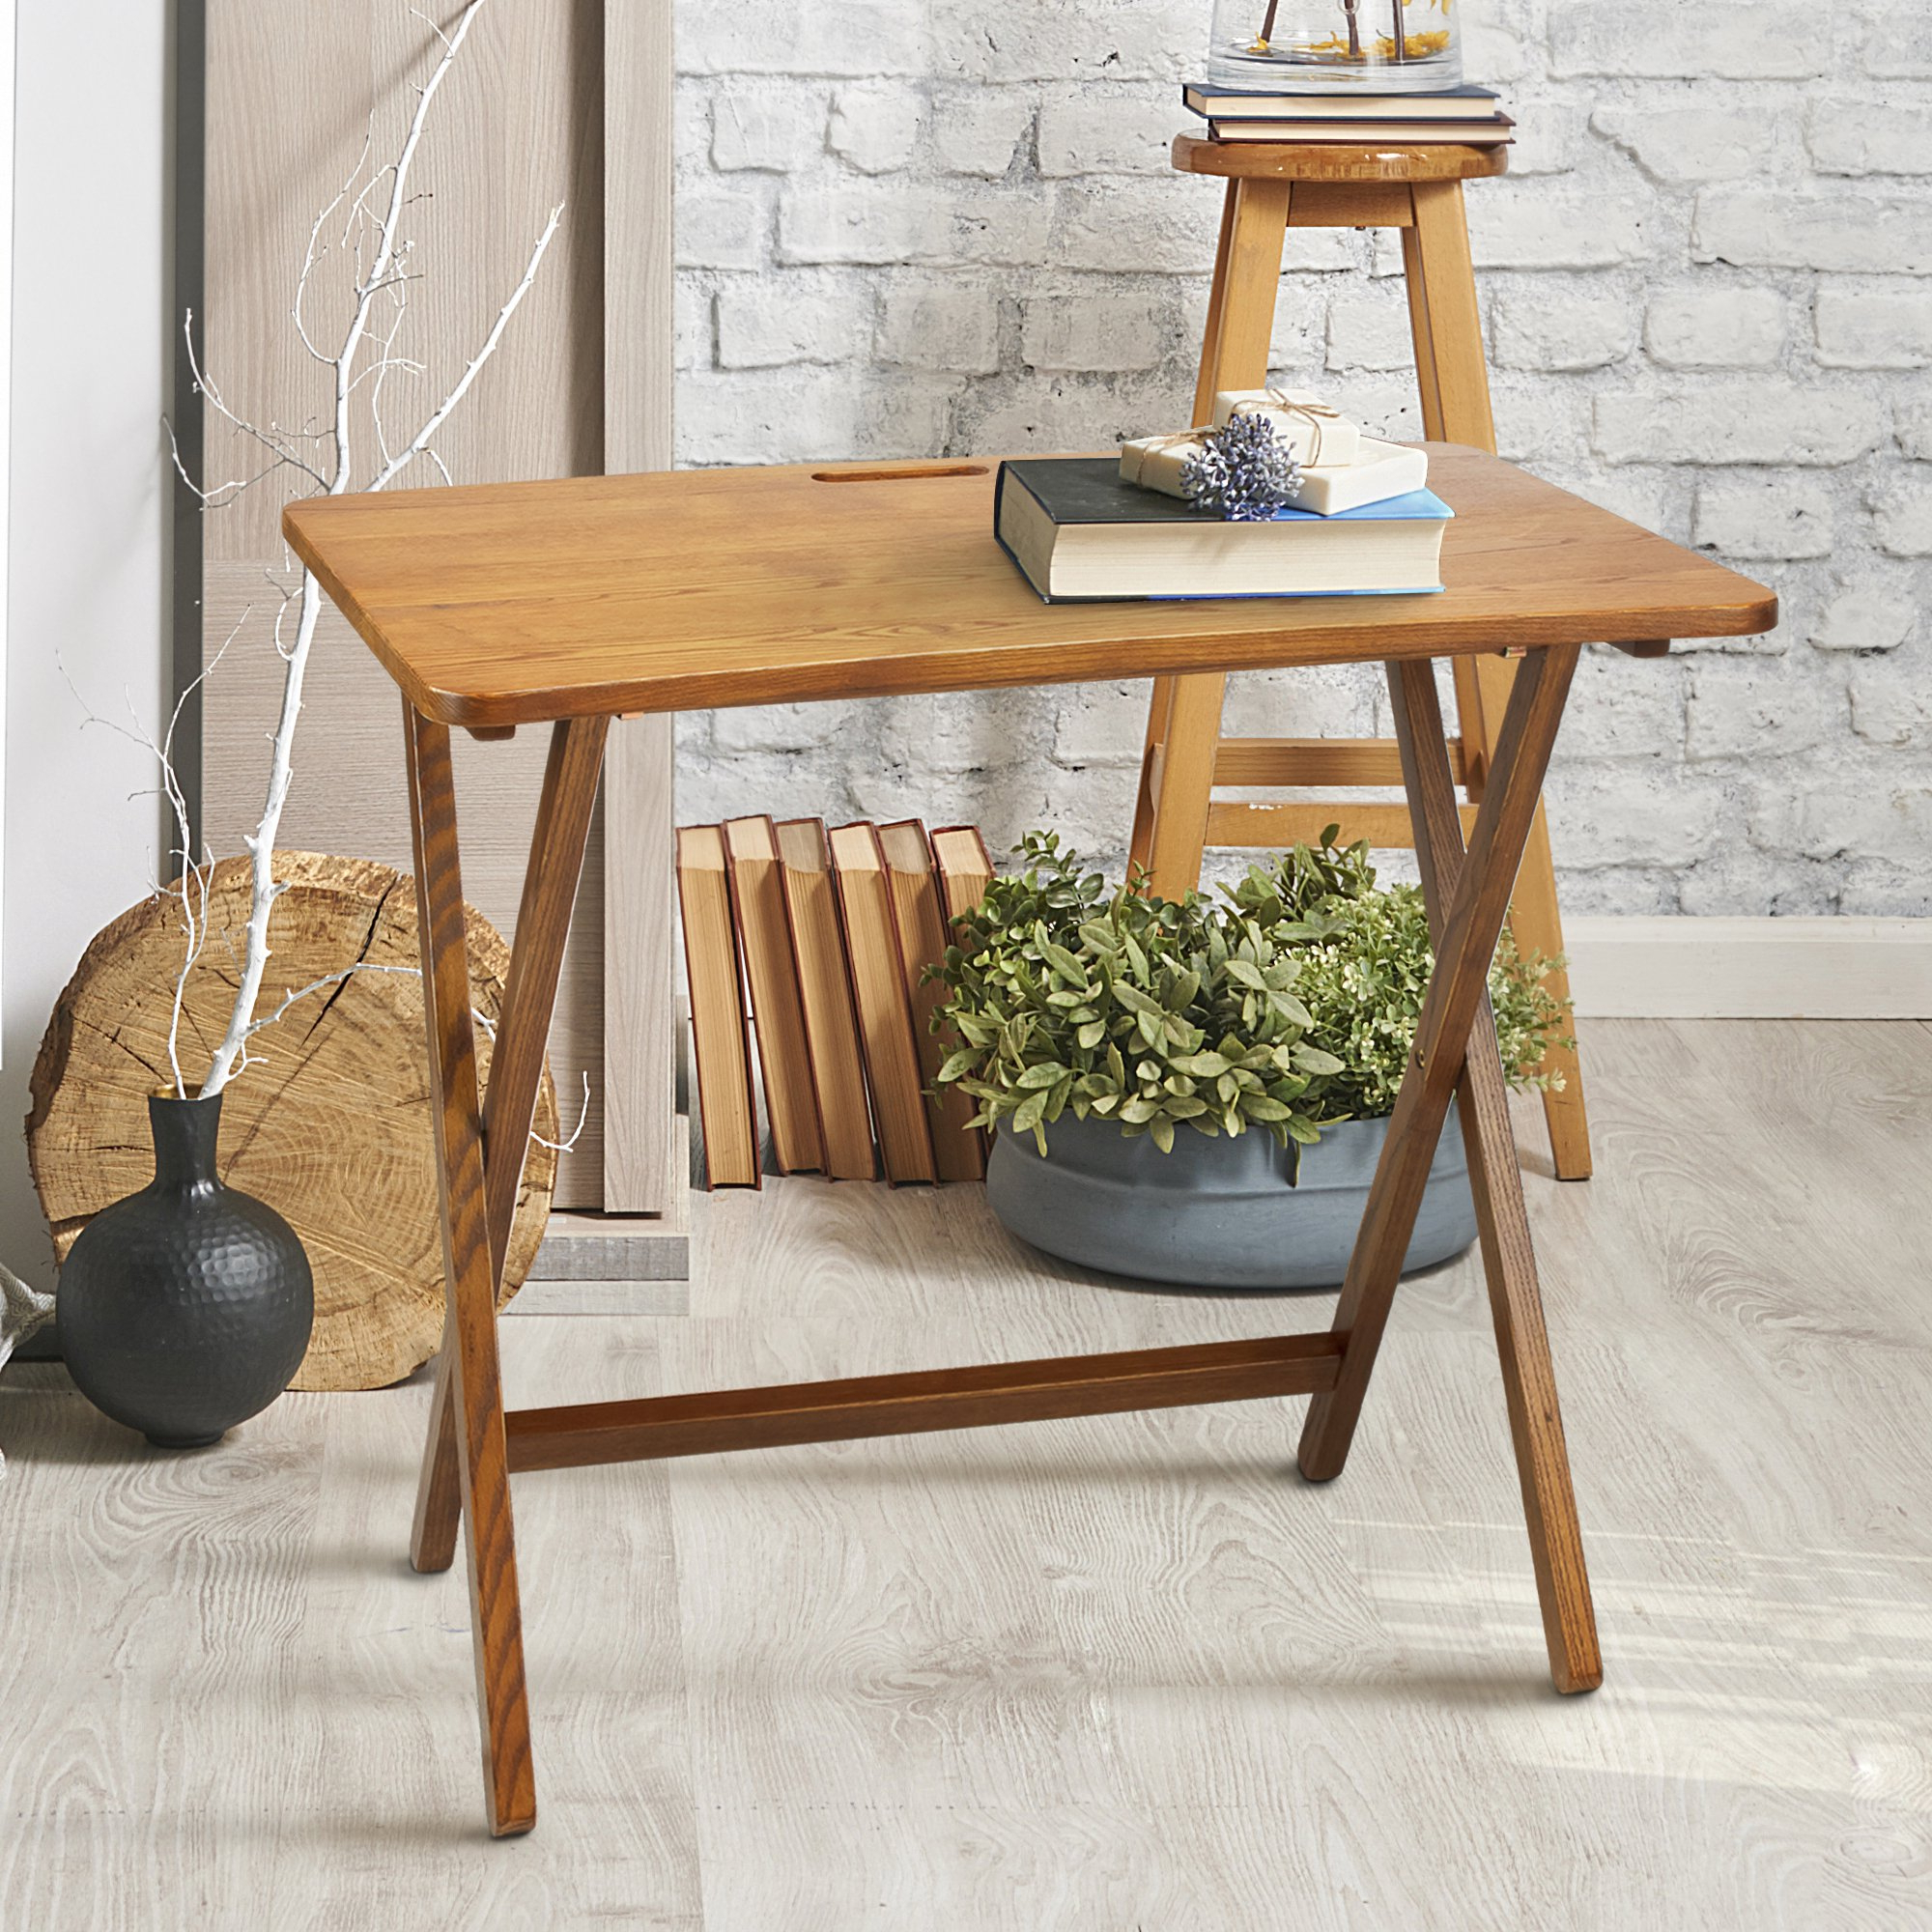 Shop Pine Canopy Goosefoot Red Oak Folding Tv Tray Table – Free Within Most Current Folding Wooden Tv Tray Tables (View 18 of 20)